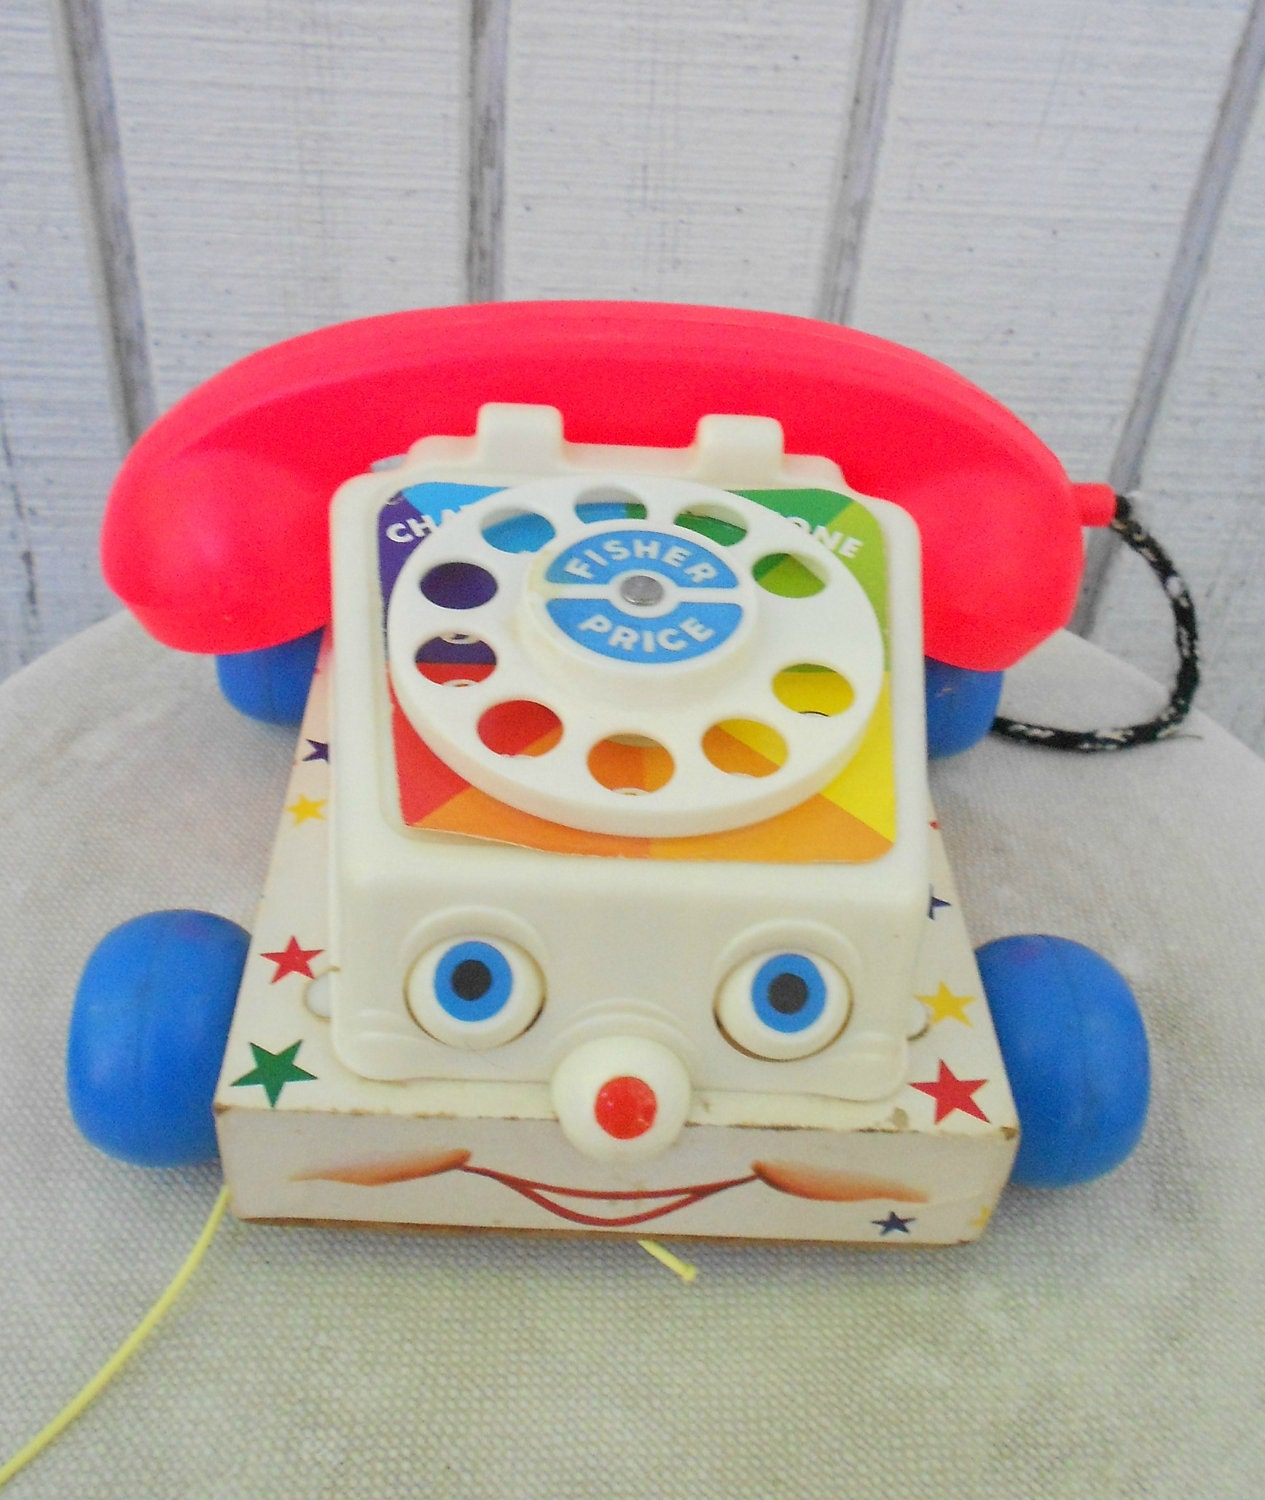 Old Toys From The 70s : S fisher price telephone chat vintage toy chatter phone